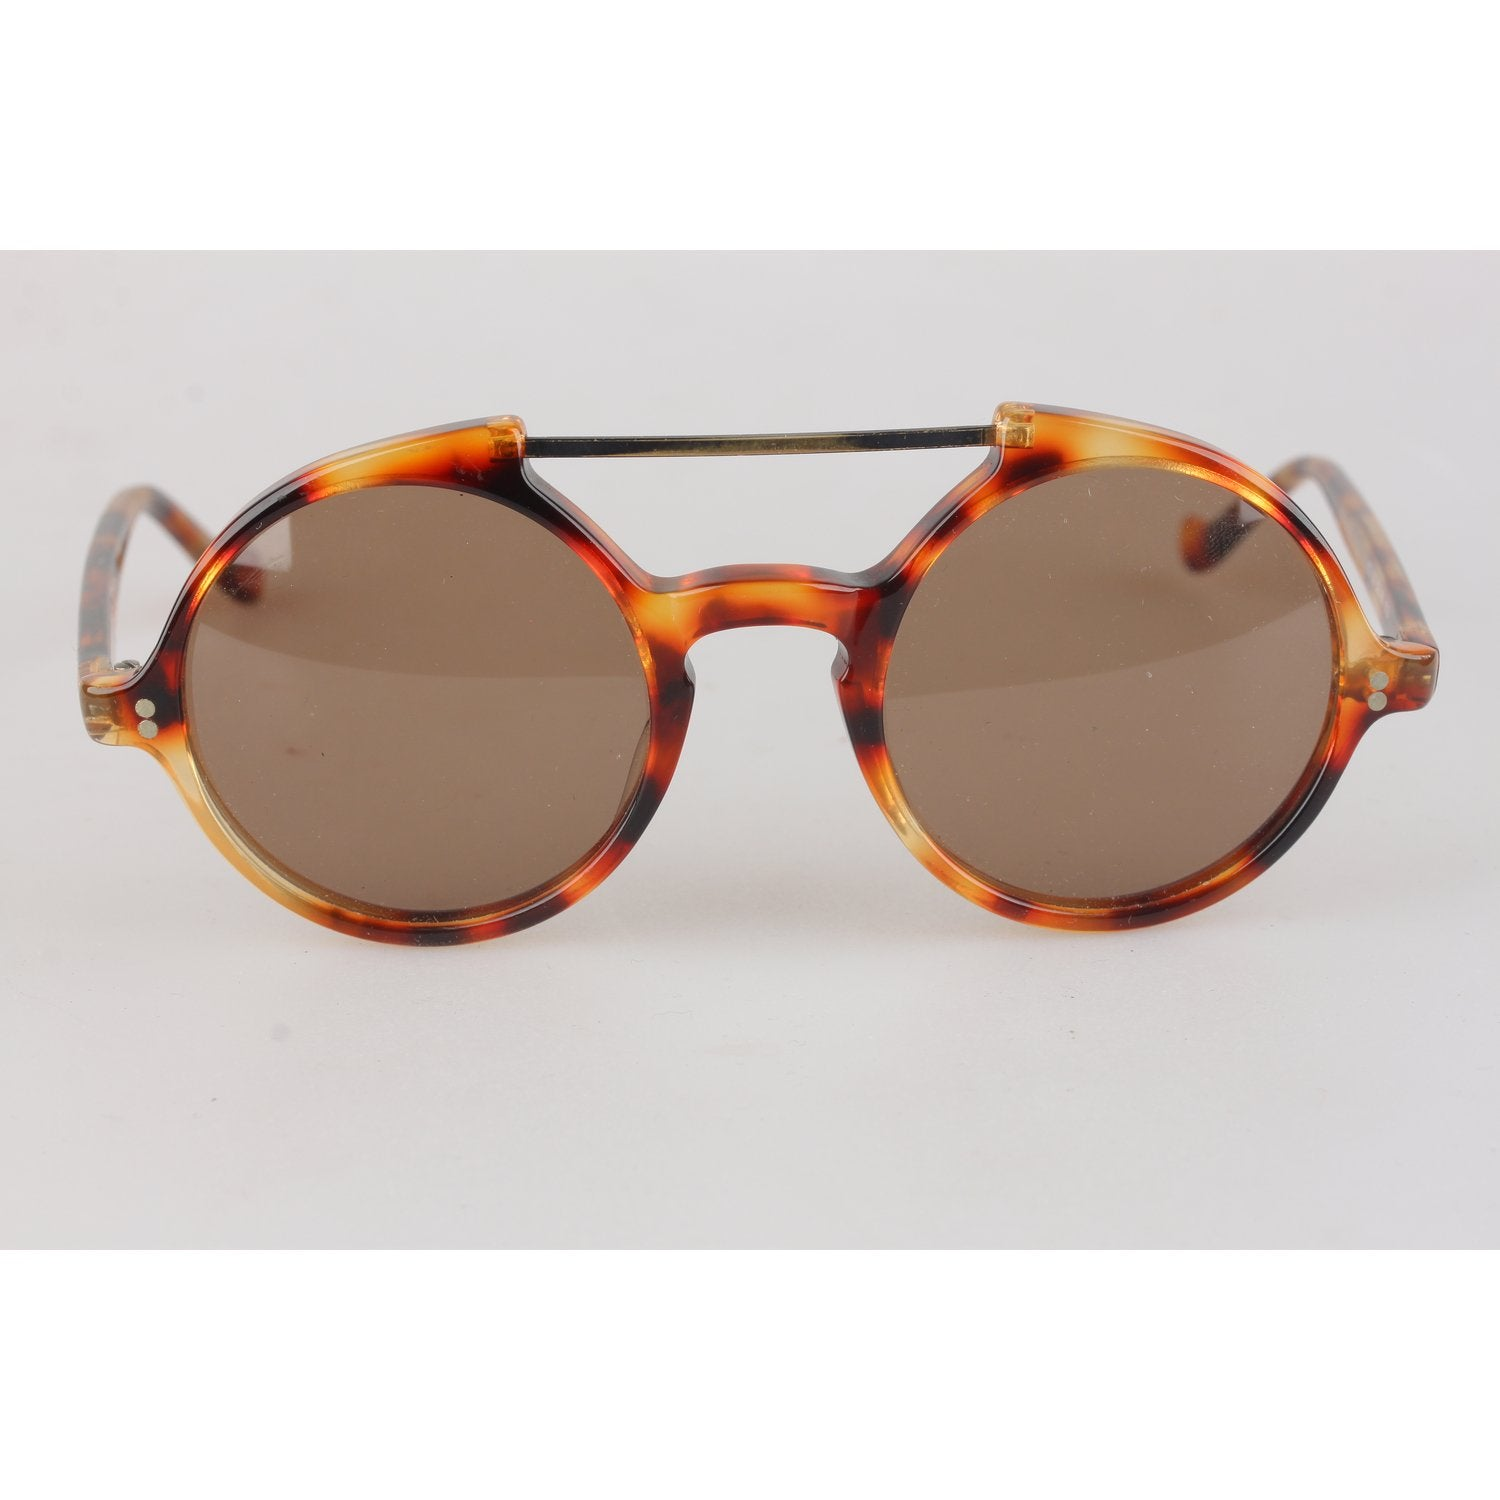 c2fbec306 Enjoy Versace Vintage Round Sunglasses 45mm Mod. 530 at OPHERTYCIOCCI –  OPHERTY & CIOCCI